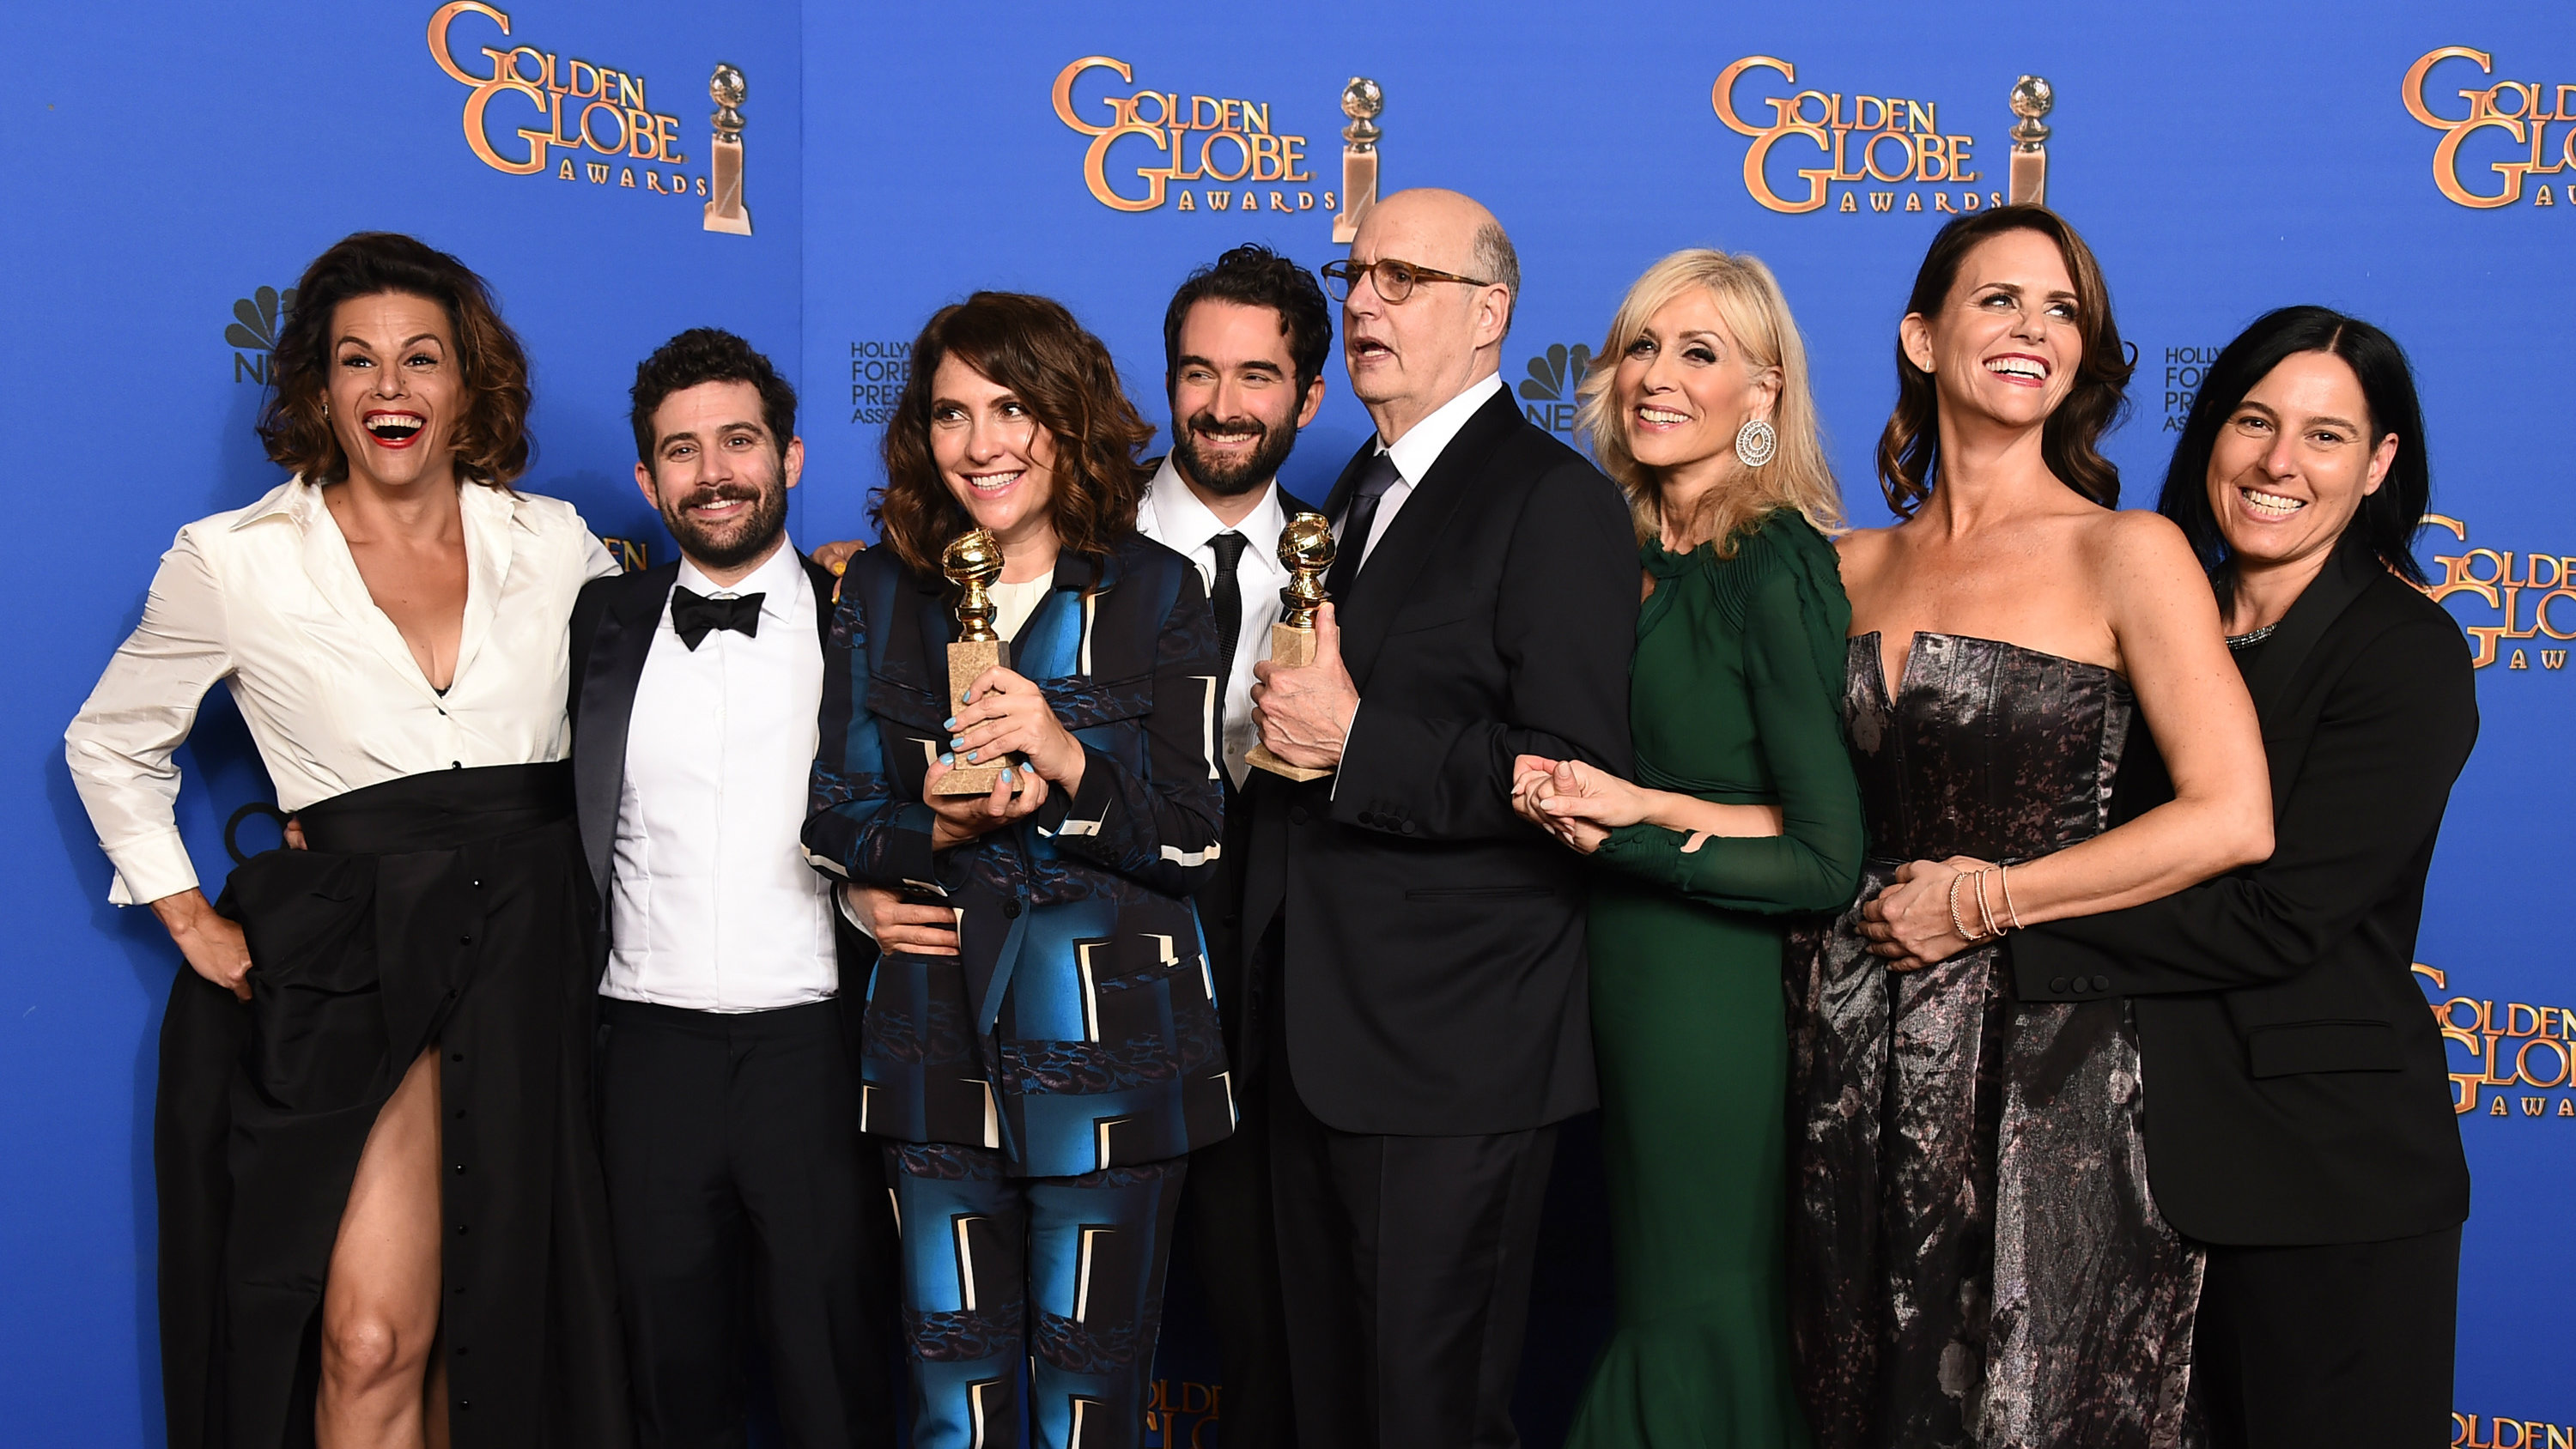 """Program creator Jill Soloway and actor Jeffrey Tambor along with the cast of """"Transparent"""" pose backstage with the award for Best Television Series - Comedy or Musical at the 72nd Golden Globe Awards in Beverly Hills, California January 11, 2015."""